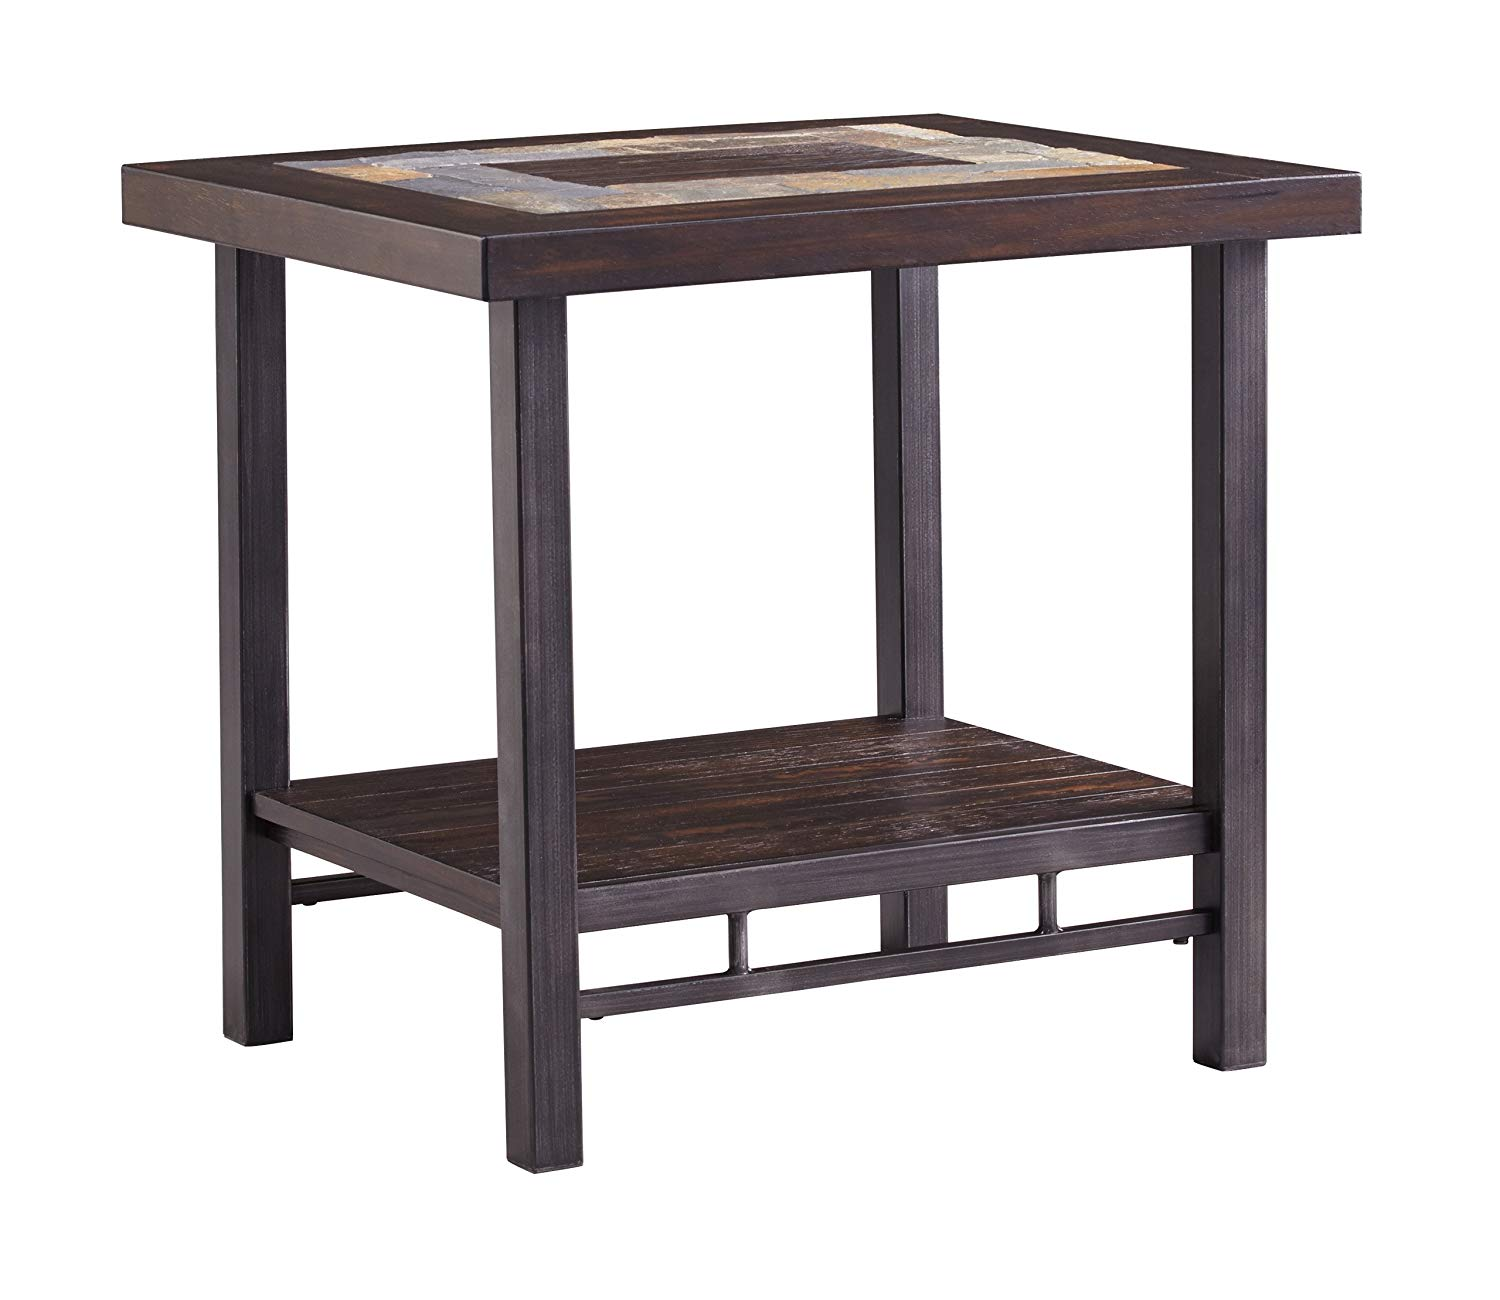 ashley furniture signature design gallivan casual two tone rectangular end table multicolored slate tables metal with tile top unfinished wood built floor lamp modern style dining